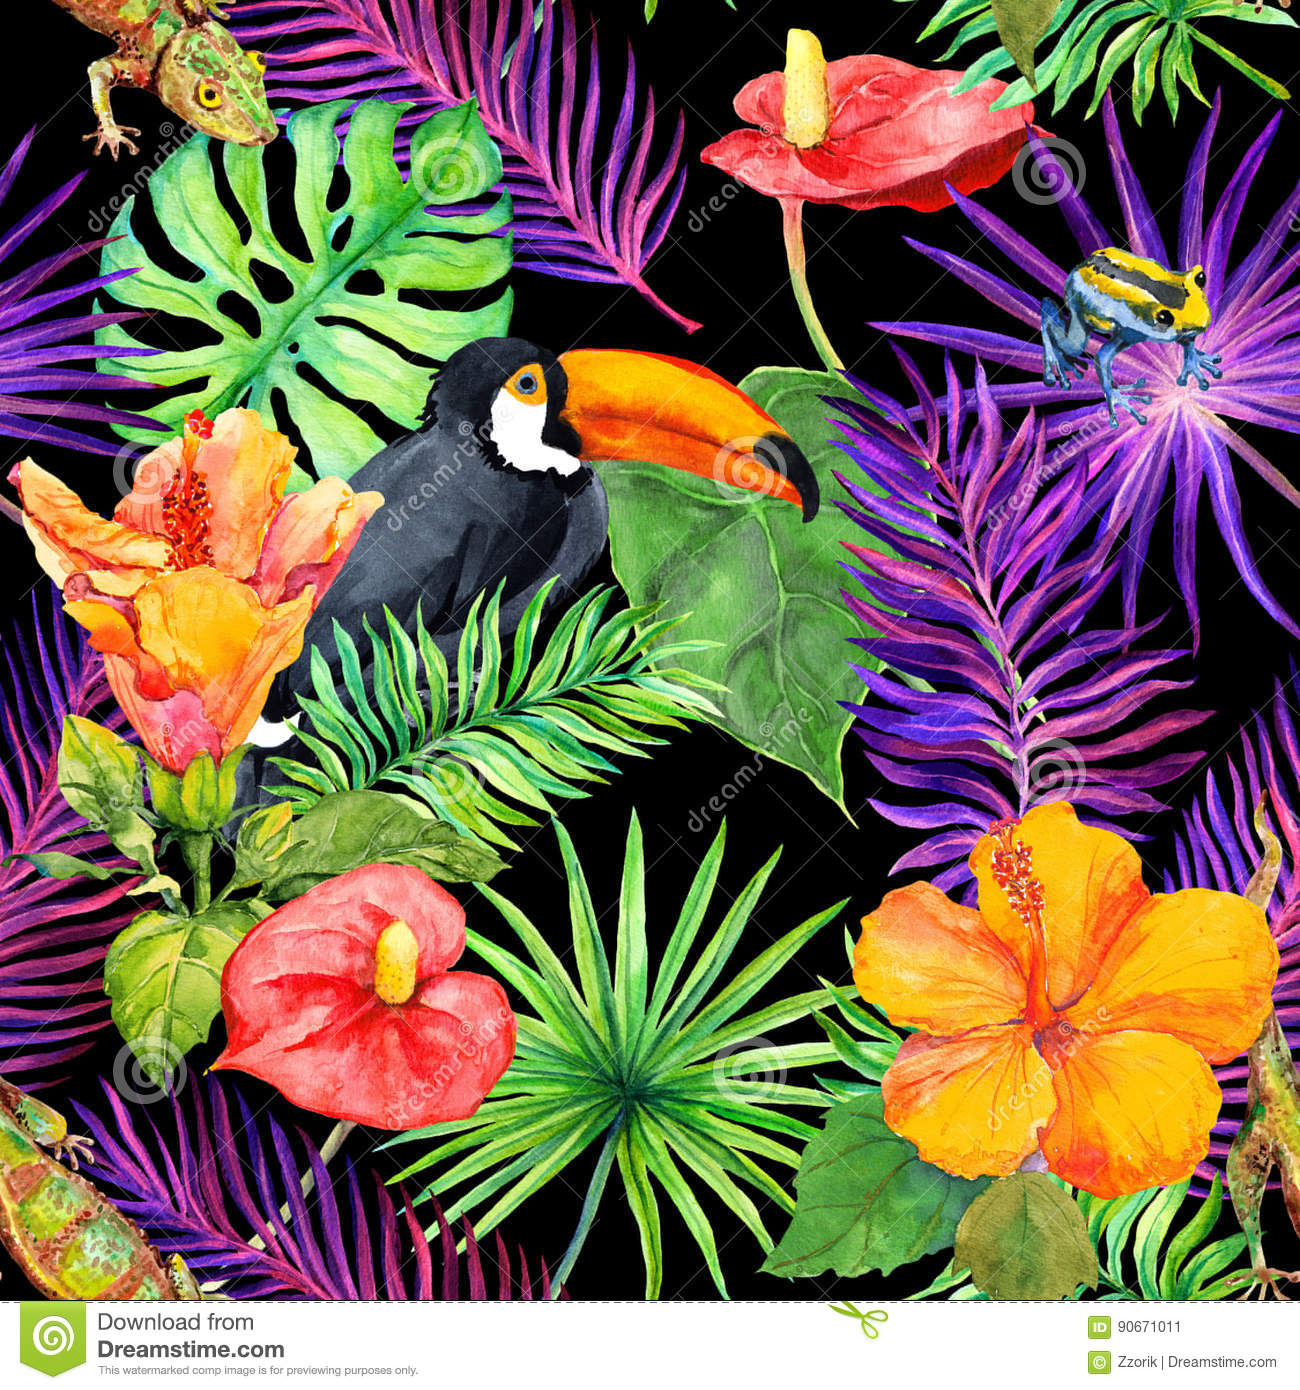 feuilles tropicales fleurs exotiques oiseau de toucan gecko papier peint sans joint. Black Bedroom Furniture Sets. Home Design Ideas